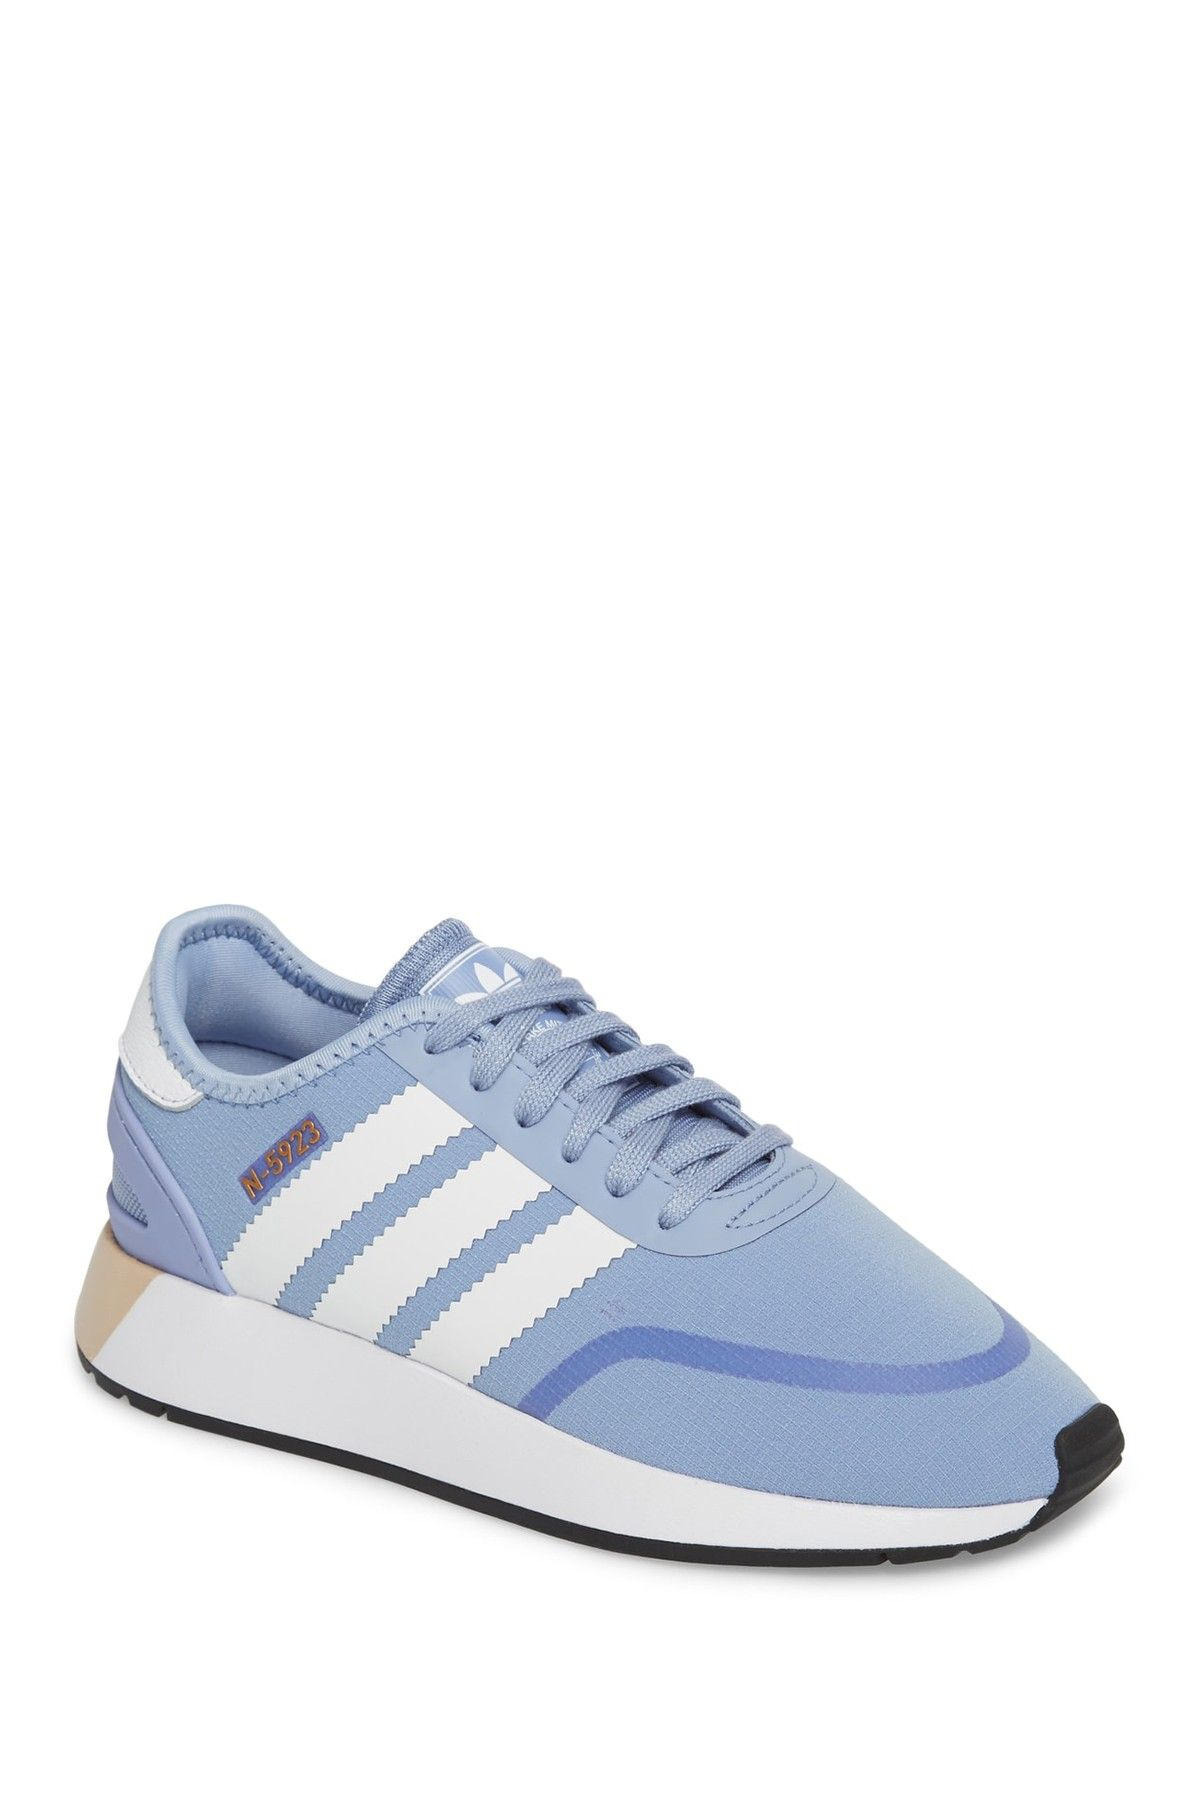 buy online 6ce72 226d0 adidas | I-5923 Sneaker in 2019 | Shoes | Sneakers, Adidas ...